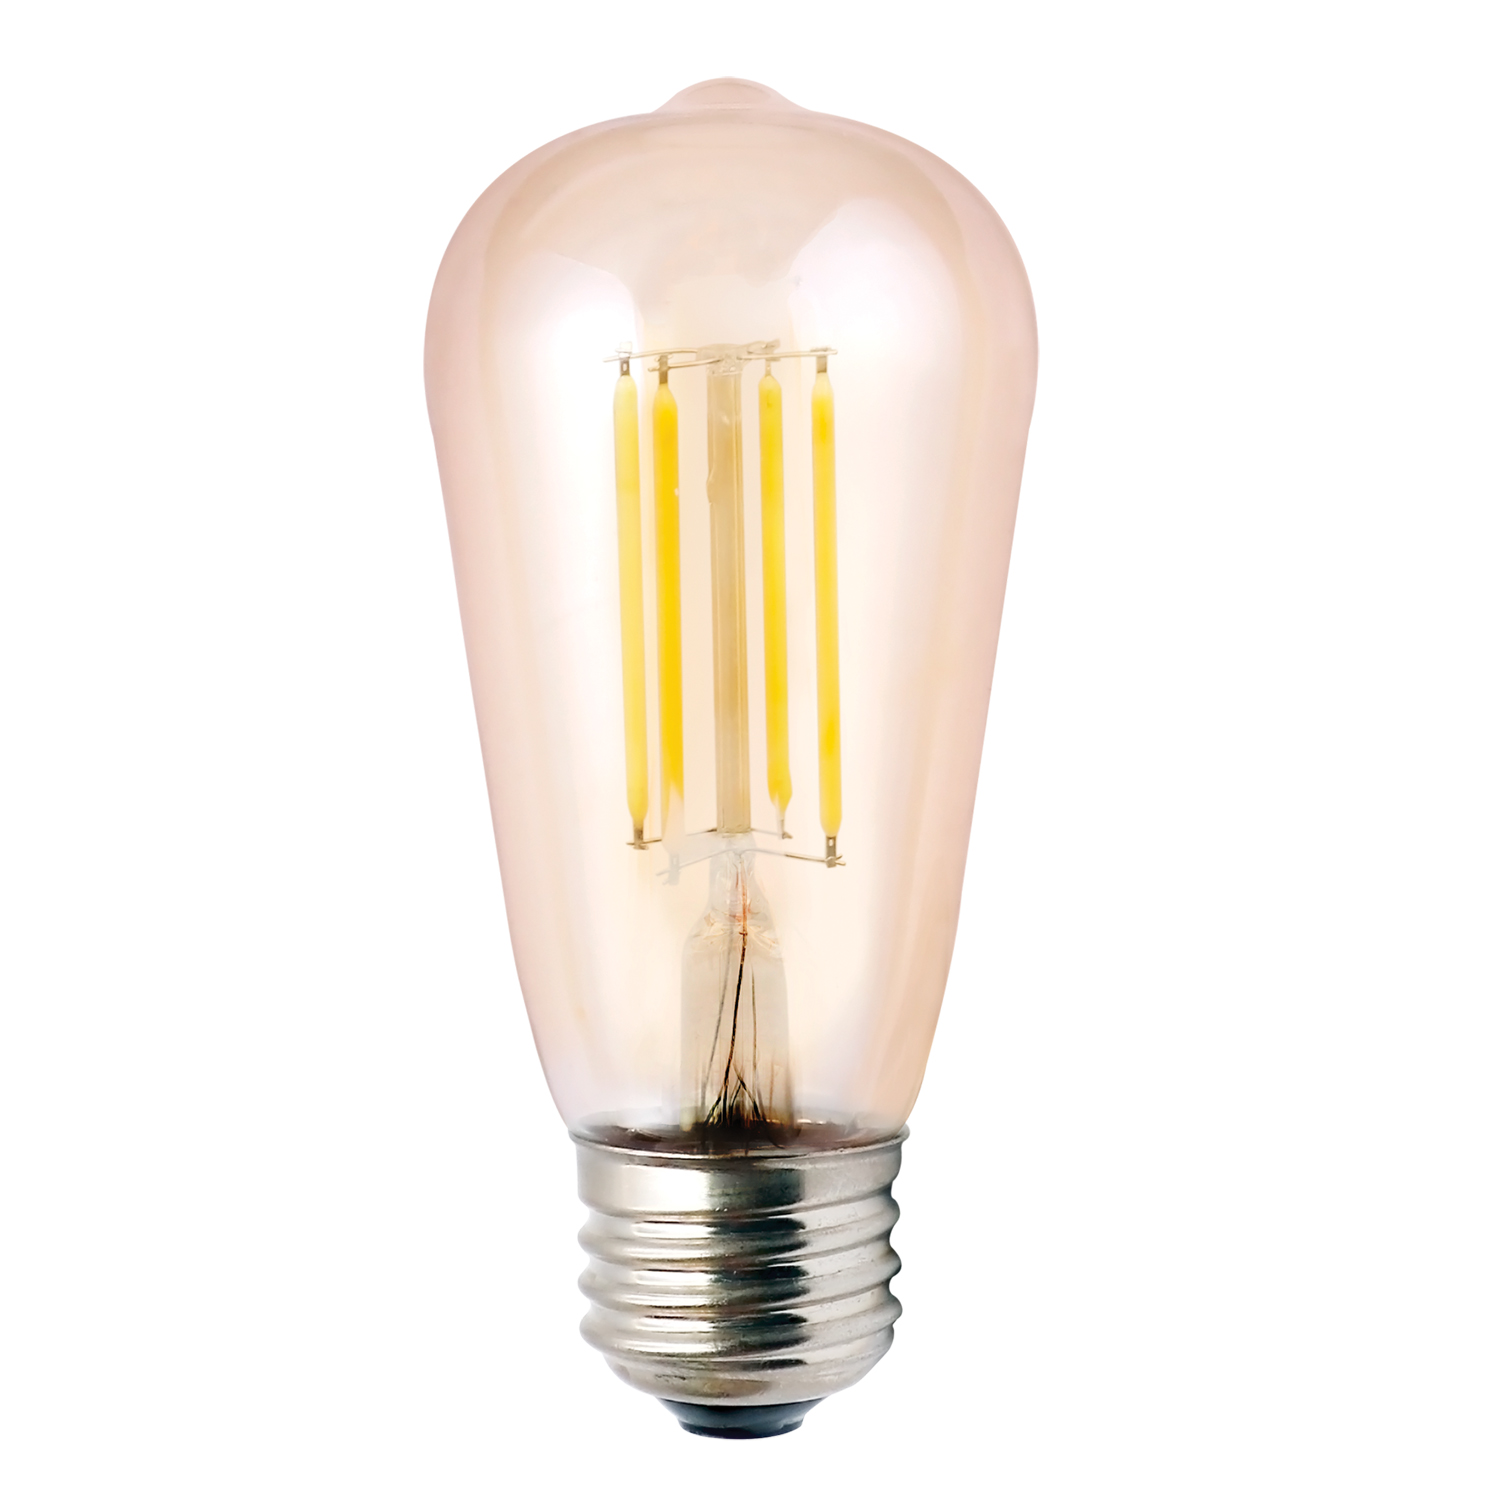 ST19AMB7ANT/822/LED2 85046 ST19 120V 7W 2200K E26 AMBER ProLED